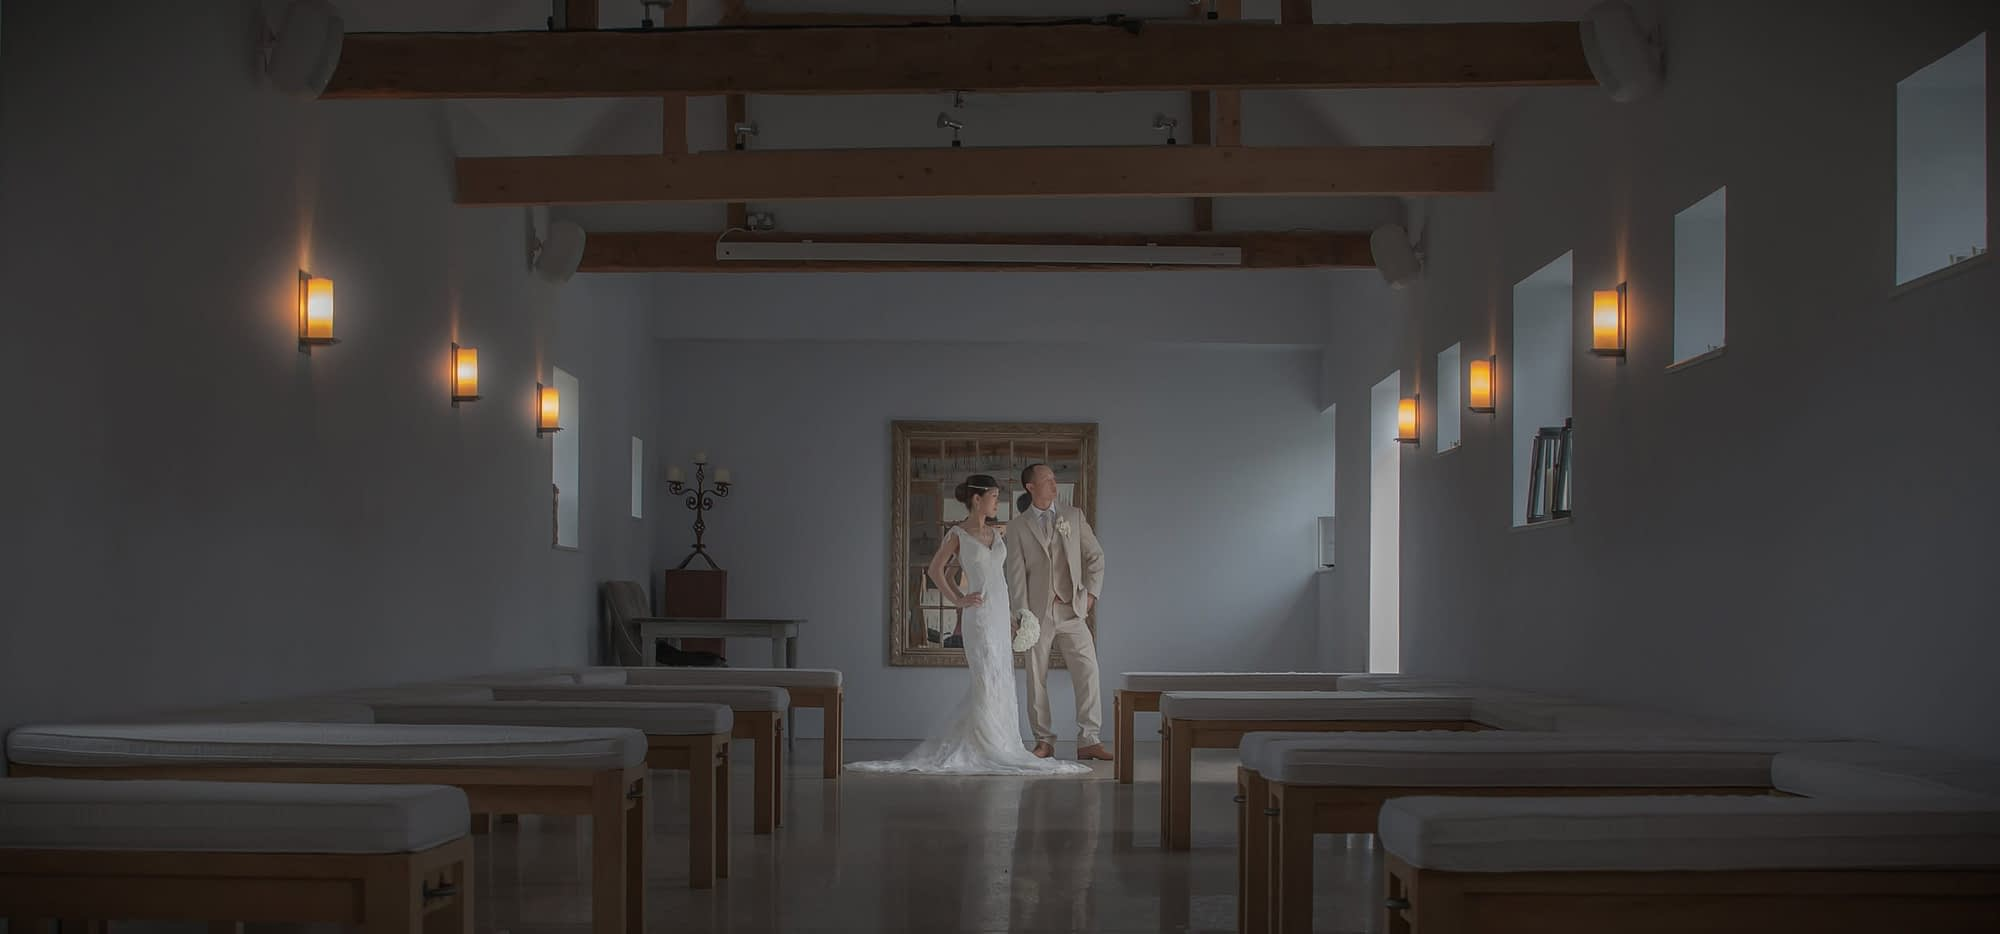 couple standing together inside with lights on